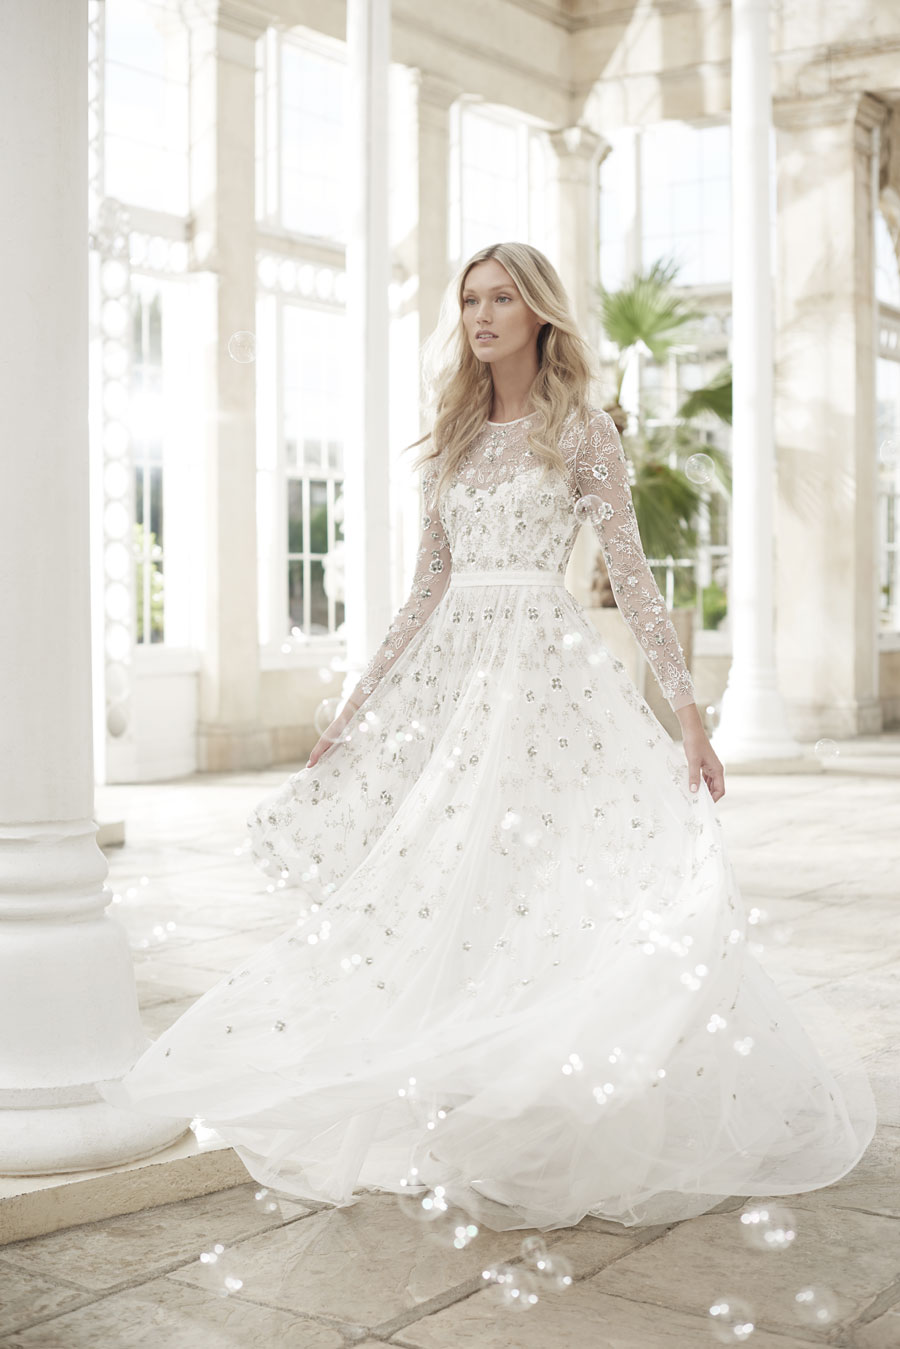 Wonderfully Romantic Wedding Dresses: The Needle & Thread ...